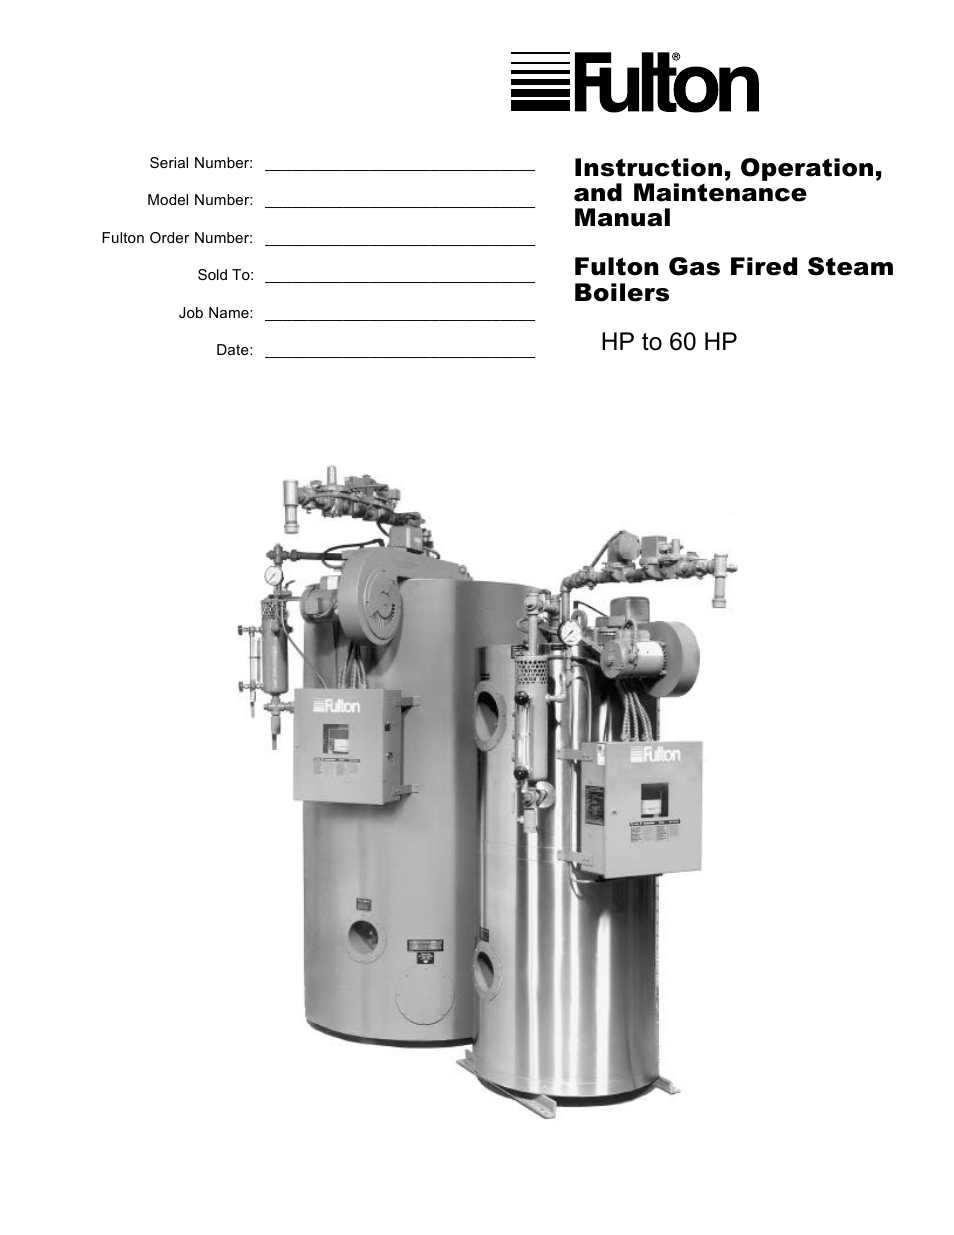 Snap Fulton Steam Boiler Wiring Diagram Efcaviationcom Photos On Gas